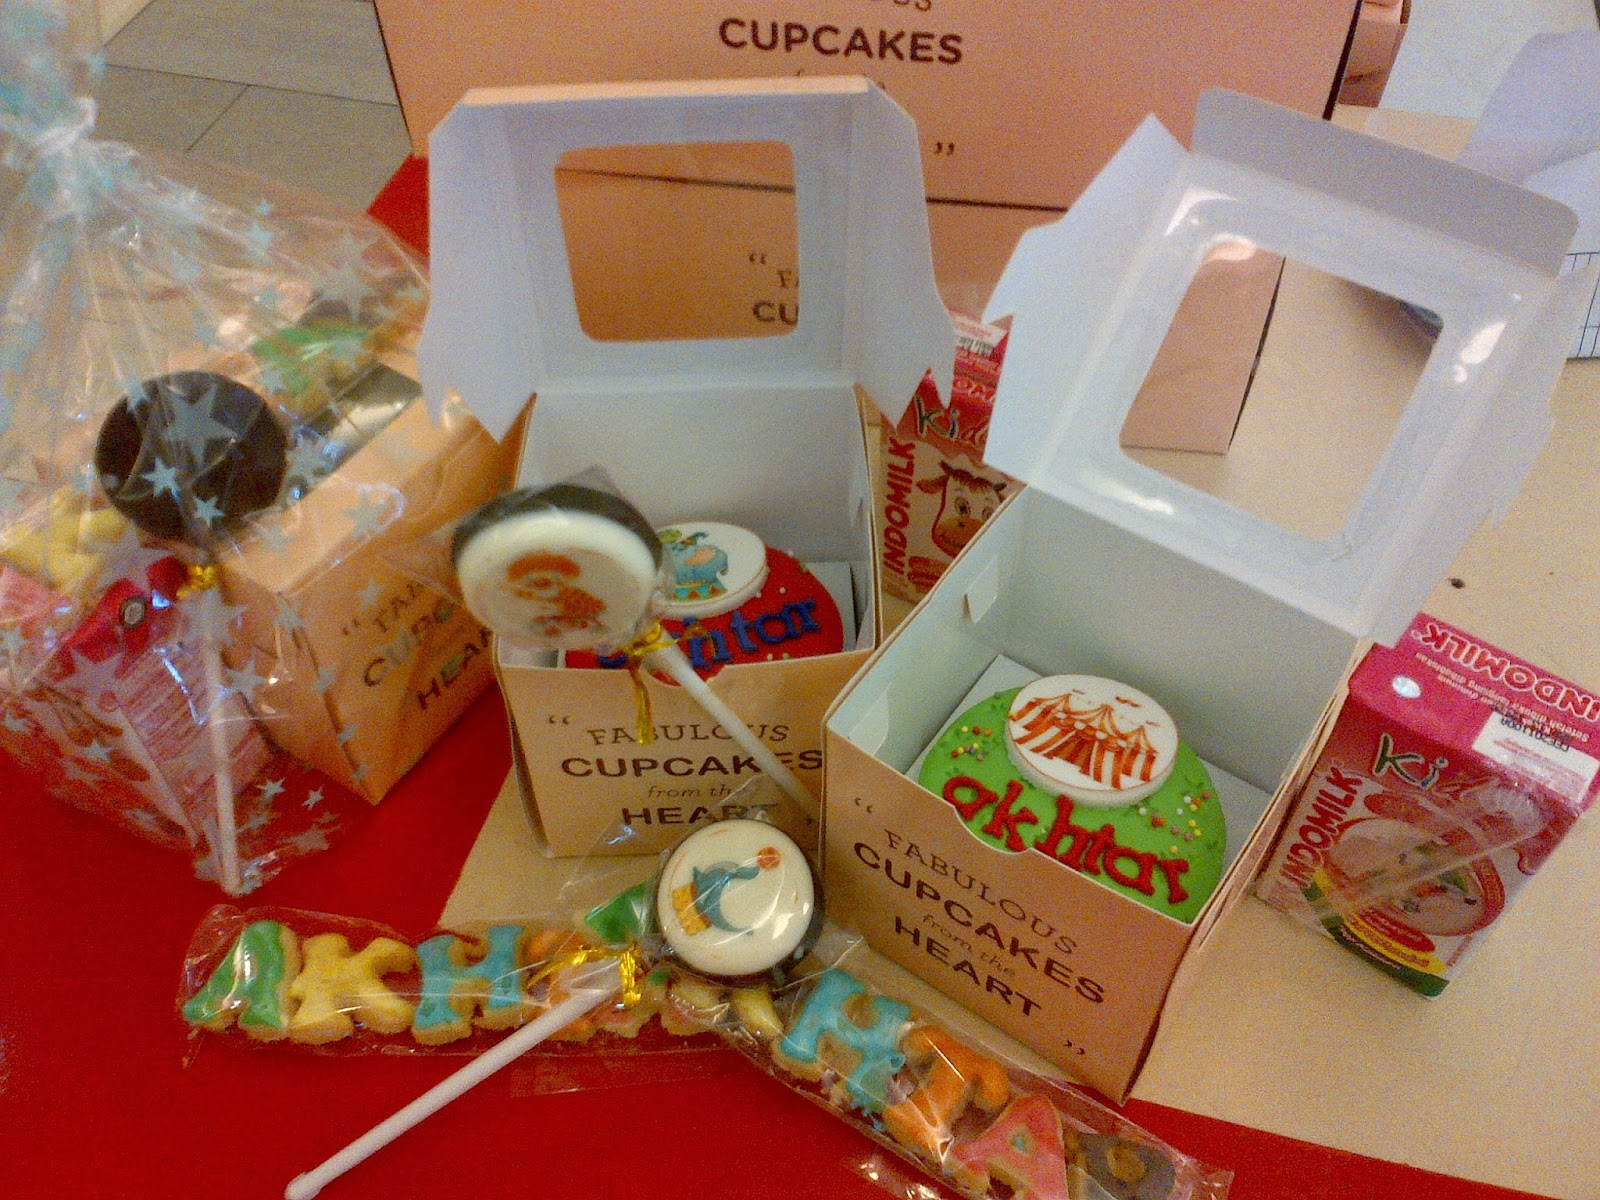 Cupcakes By Chocoholic Cupcakes Buat Goodie Bag Ulang